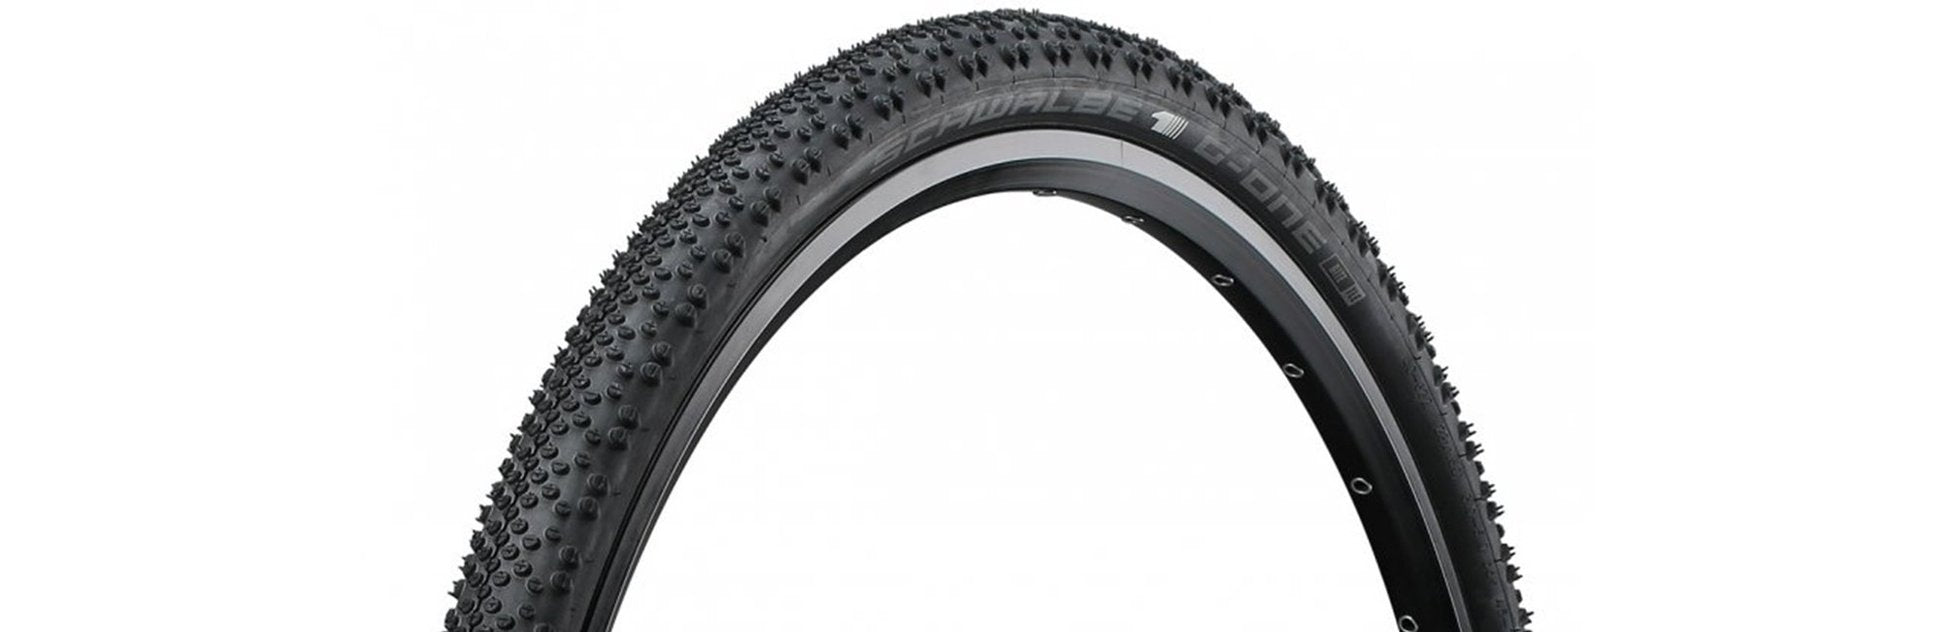 Schwalbe G One Bite Tubeless Tyres